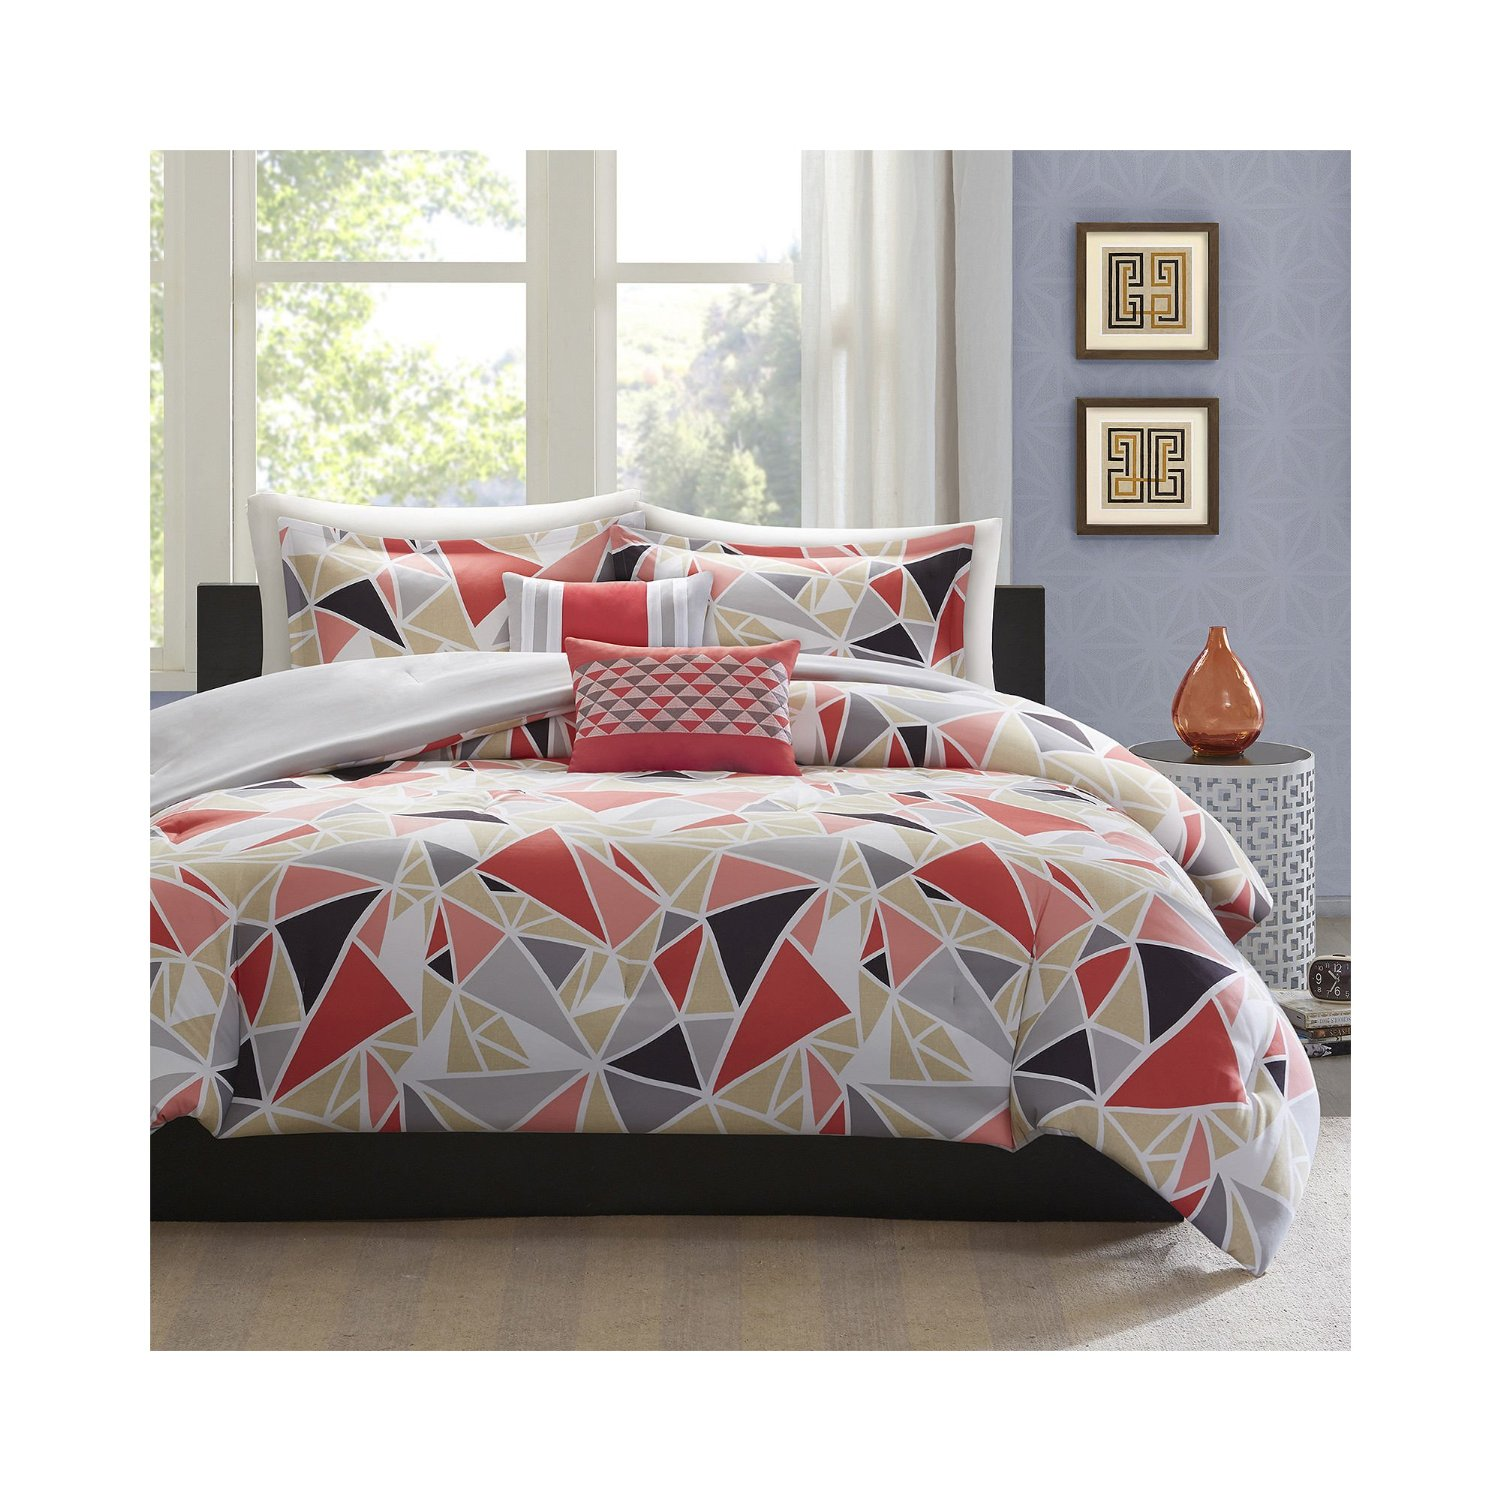 Fresh Peach Colored Comforters & Bedding Sets AA36